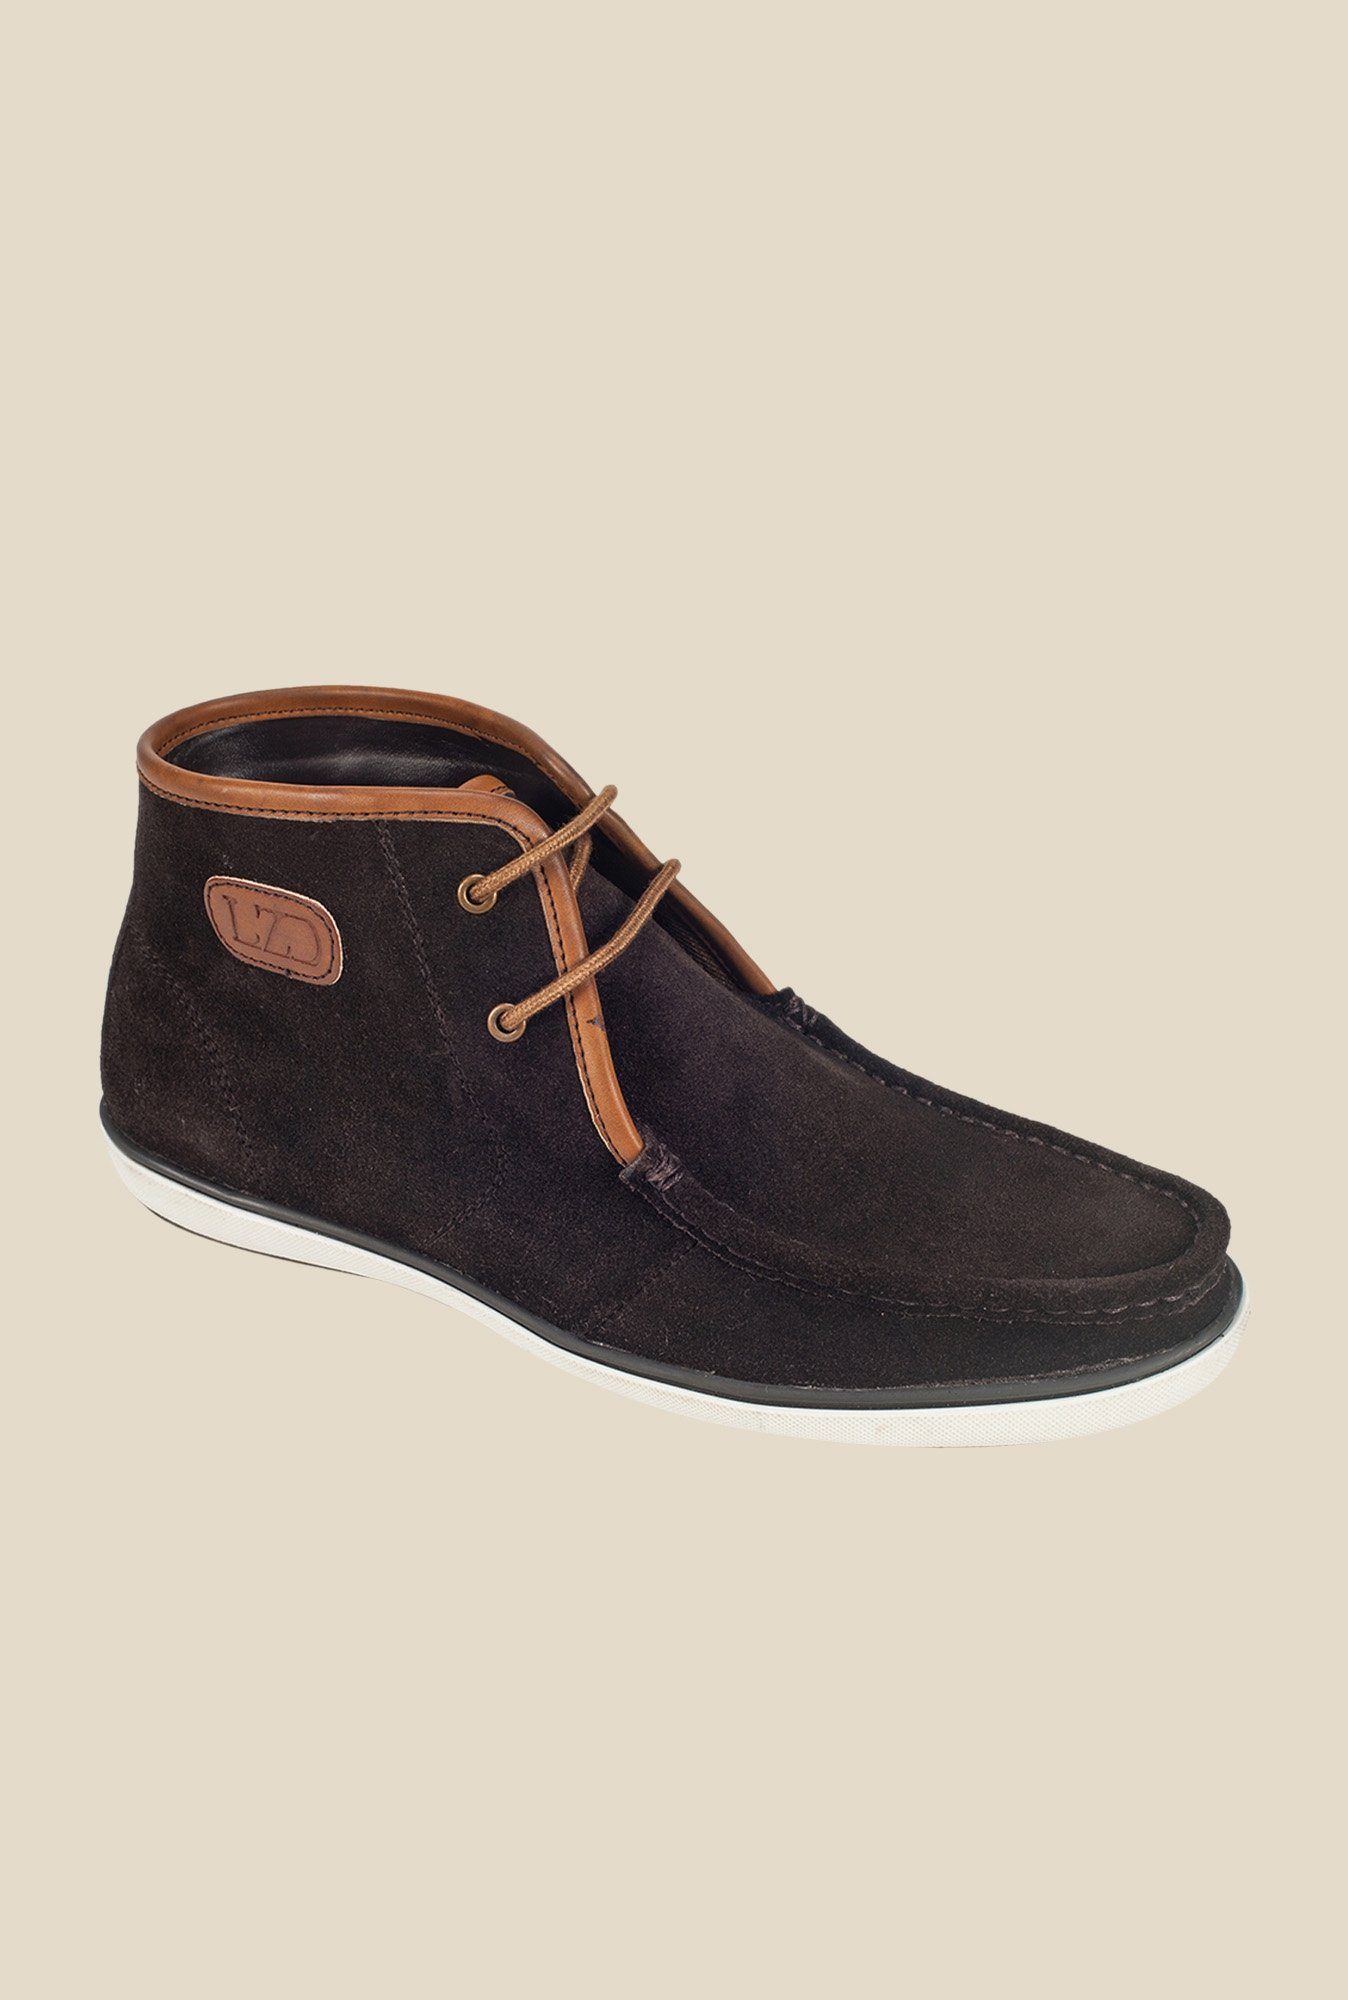 Khadim's Dark Brown Casual Boots